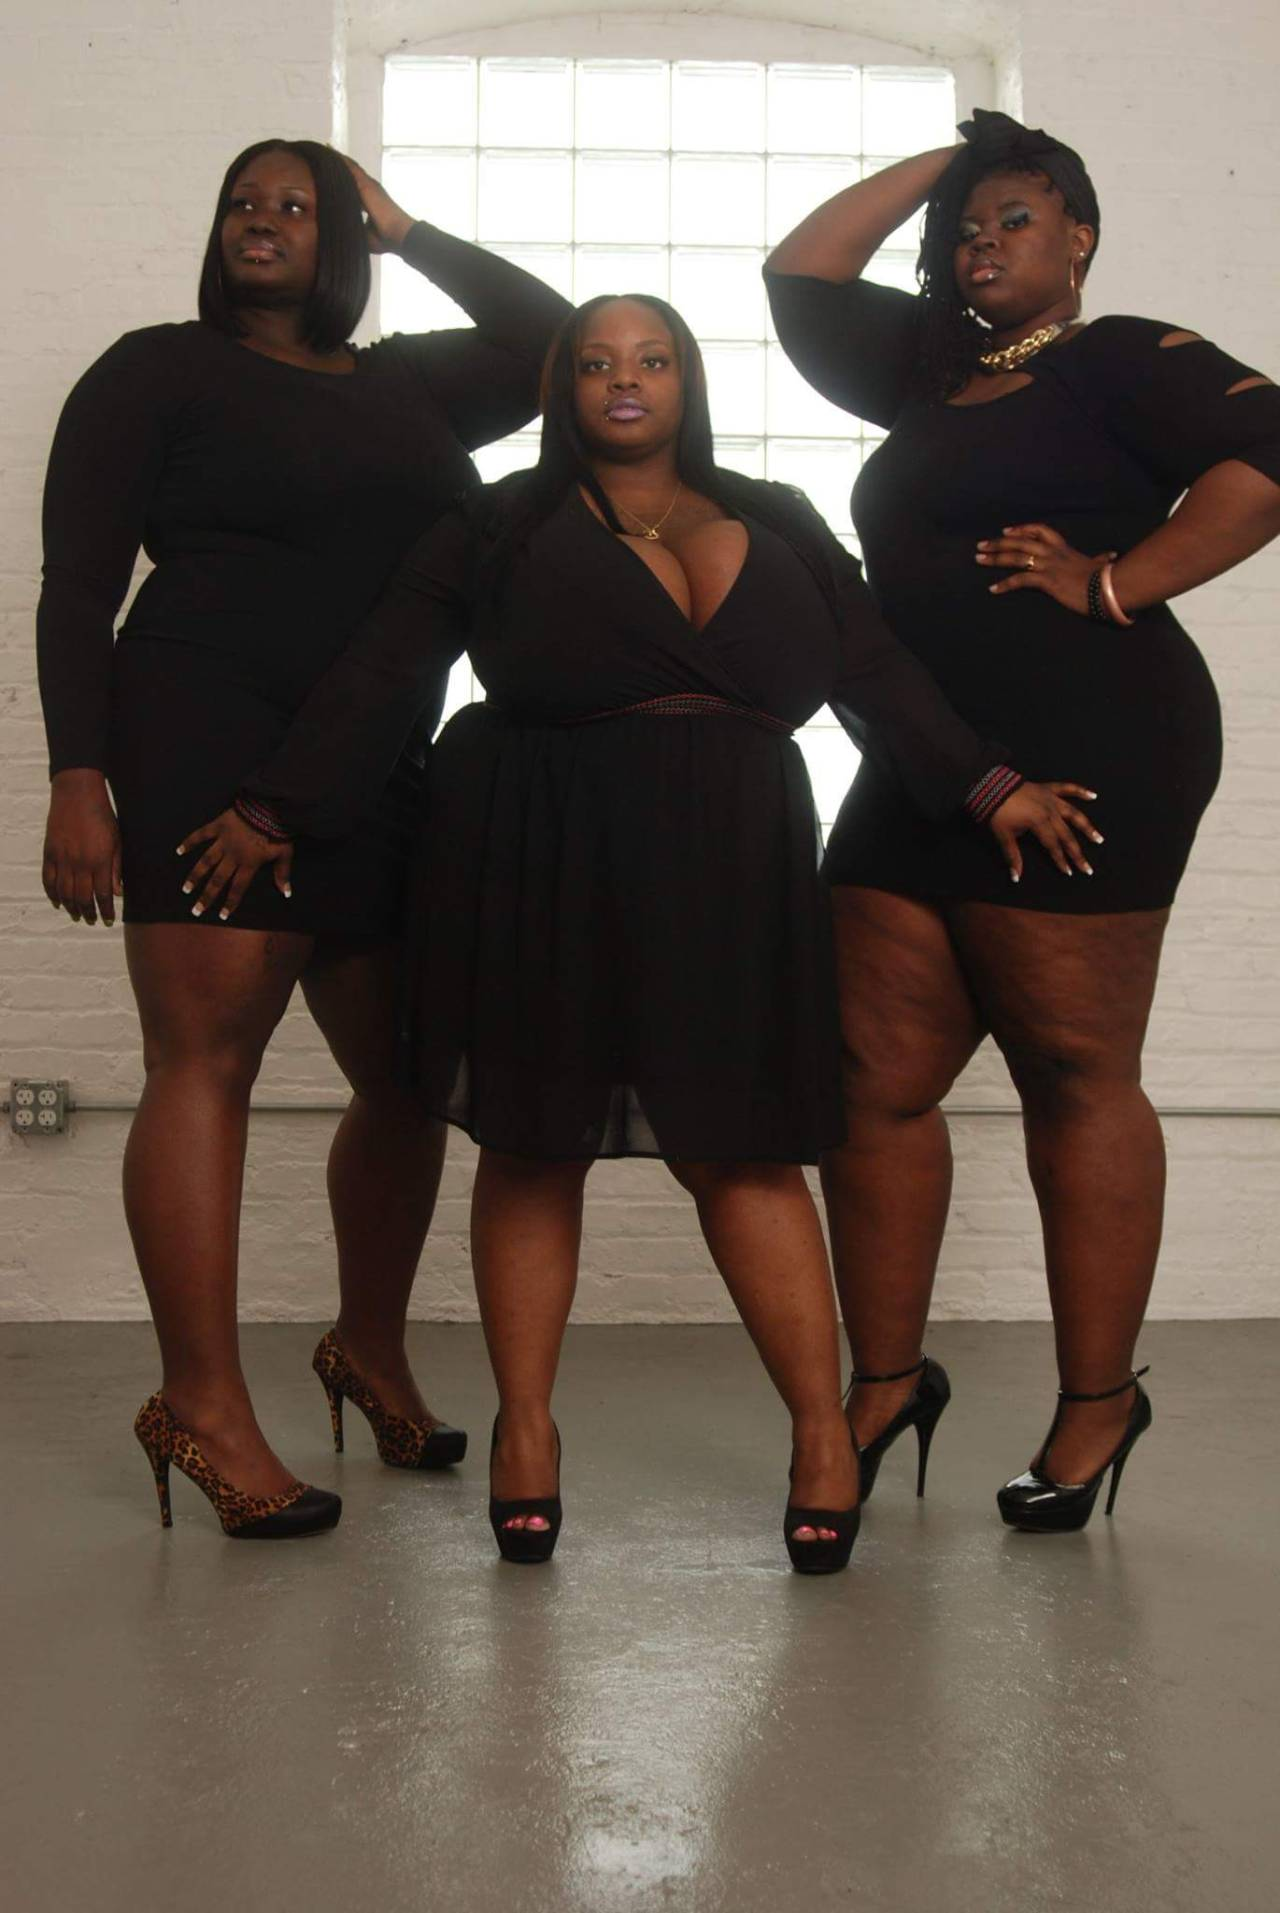 beautyandthickness: A full plate of chocolate goodness